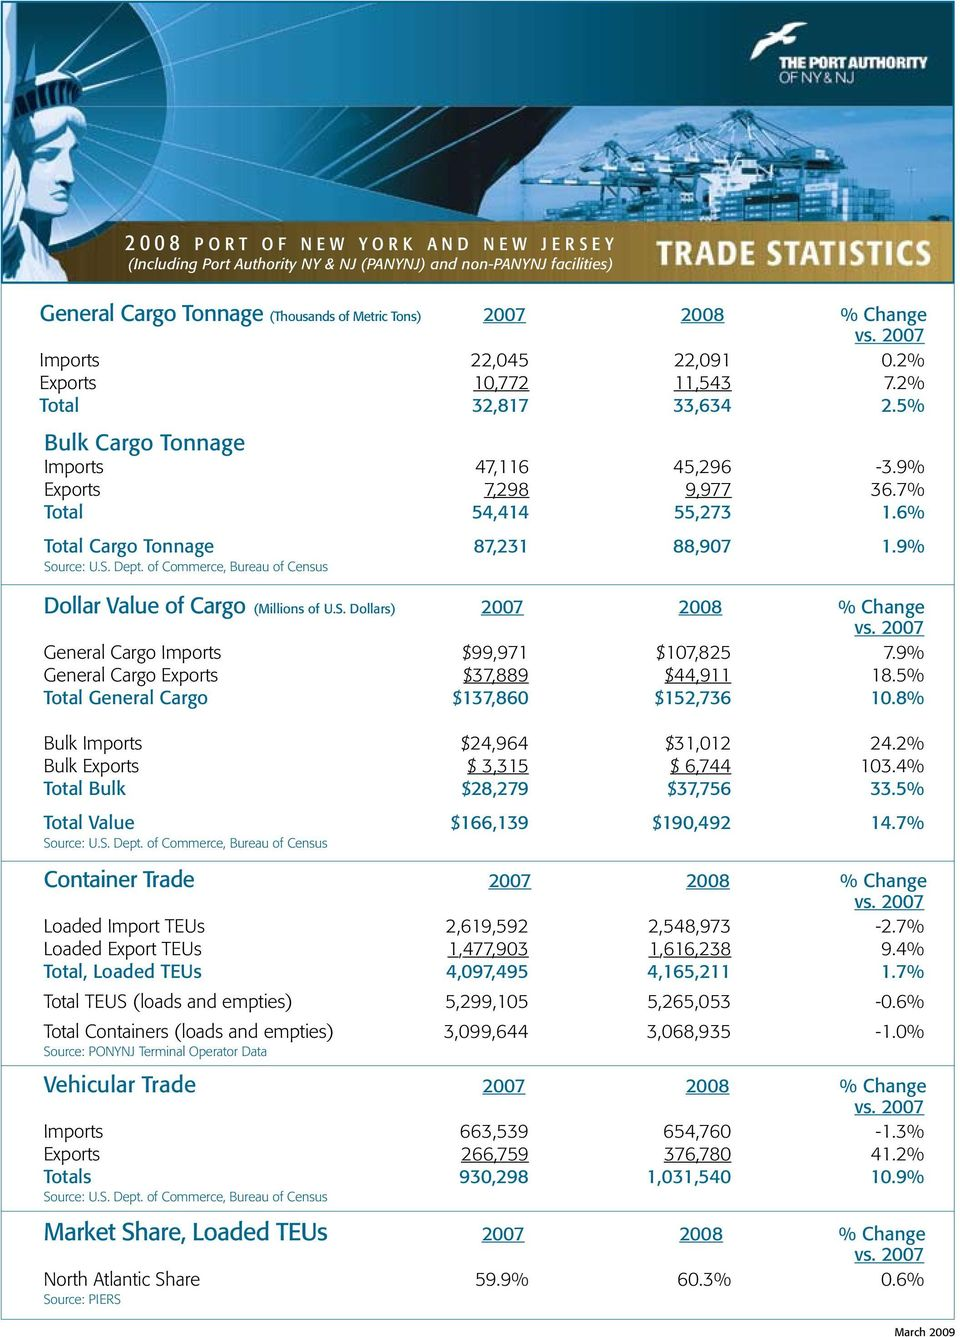 7% Total 54,414 55,273 1.6% Total Cargo Tonnage 87,231 88,907 1.9% Dollar Value of Cargo (Millions of U.S. Dollars) 2007 2008 % Change General Cargo Imports $99,971 $107,825 7.